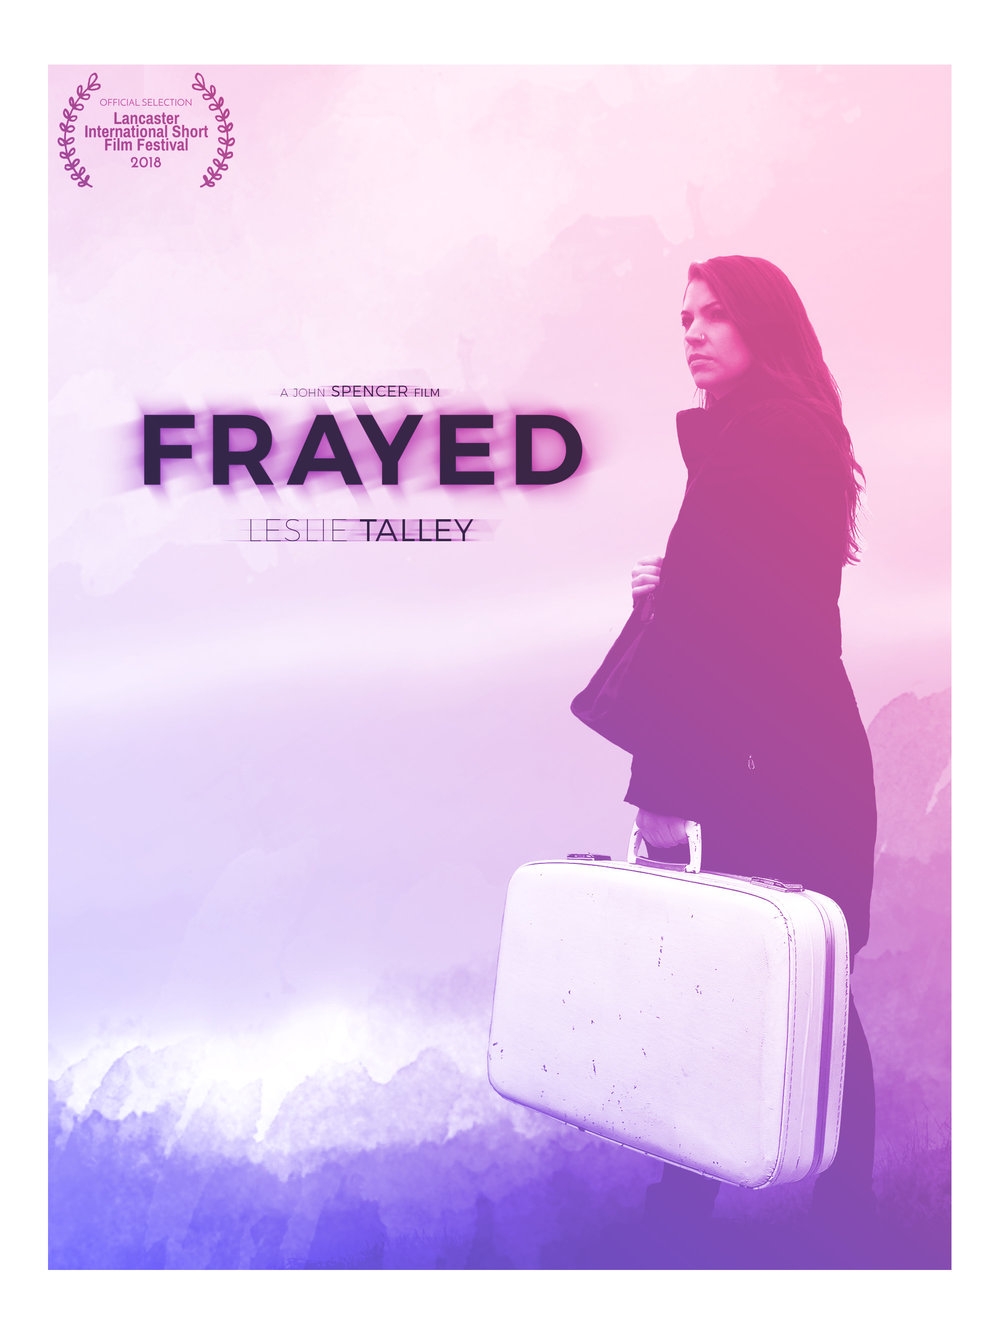 SYNOPSIS - A woman on the mend from an abusive relationship struggles to overcome addiction and regain the daughter she longs to be reunited with. Time, distance, and self-doubt stand in her way of getting what she wants most.